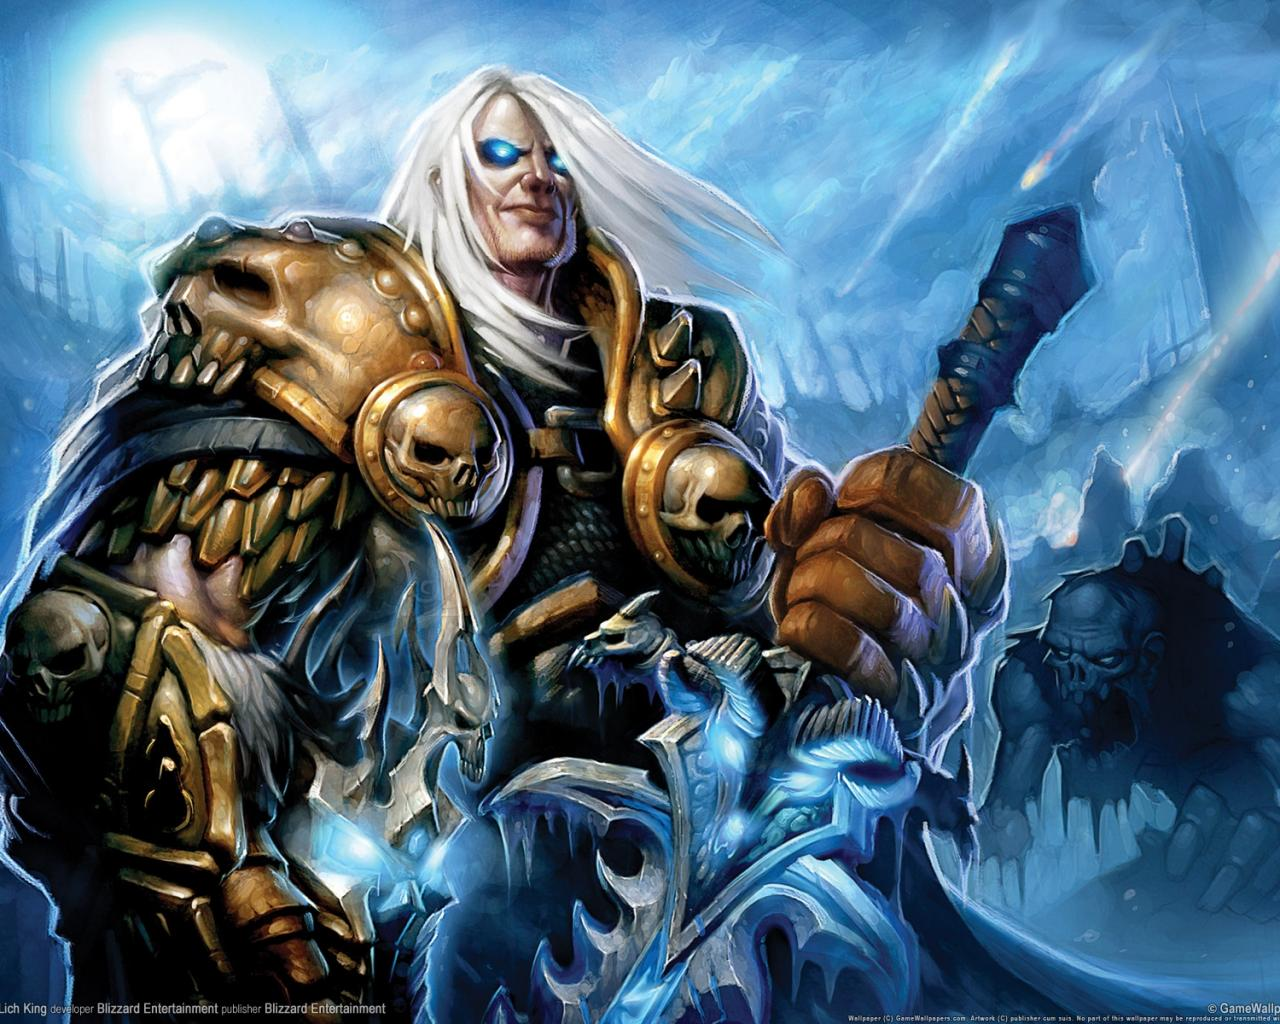 Обои игры игра Games Pubg Playerunknowns картинки на: World Of Warcraft: Wrath Of The Lich King, Game, Pc Games